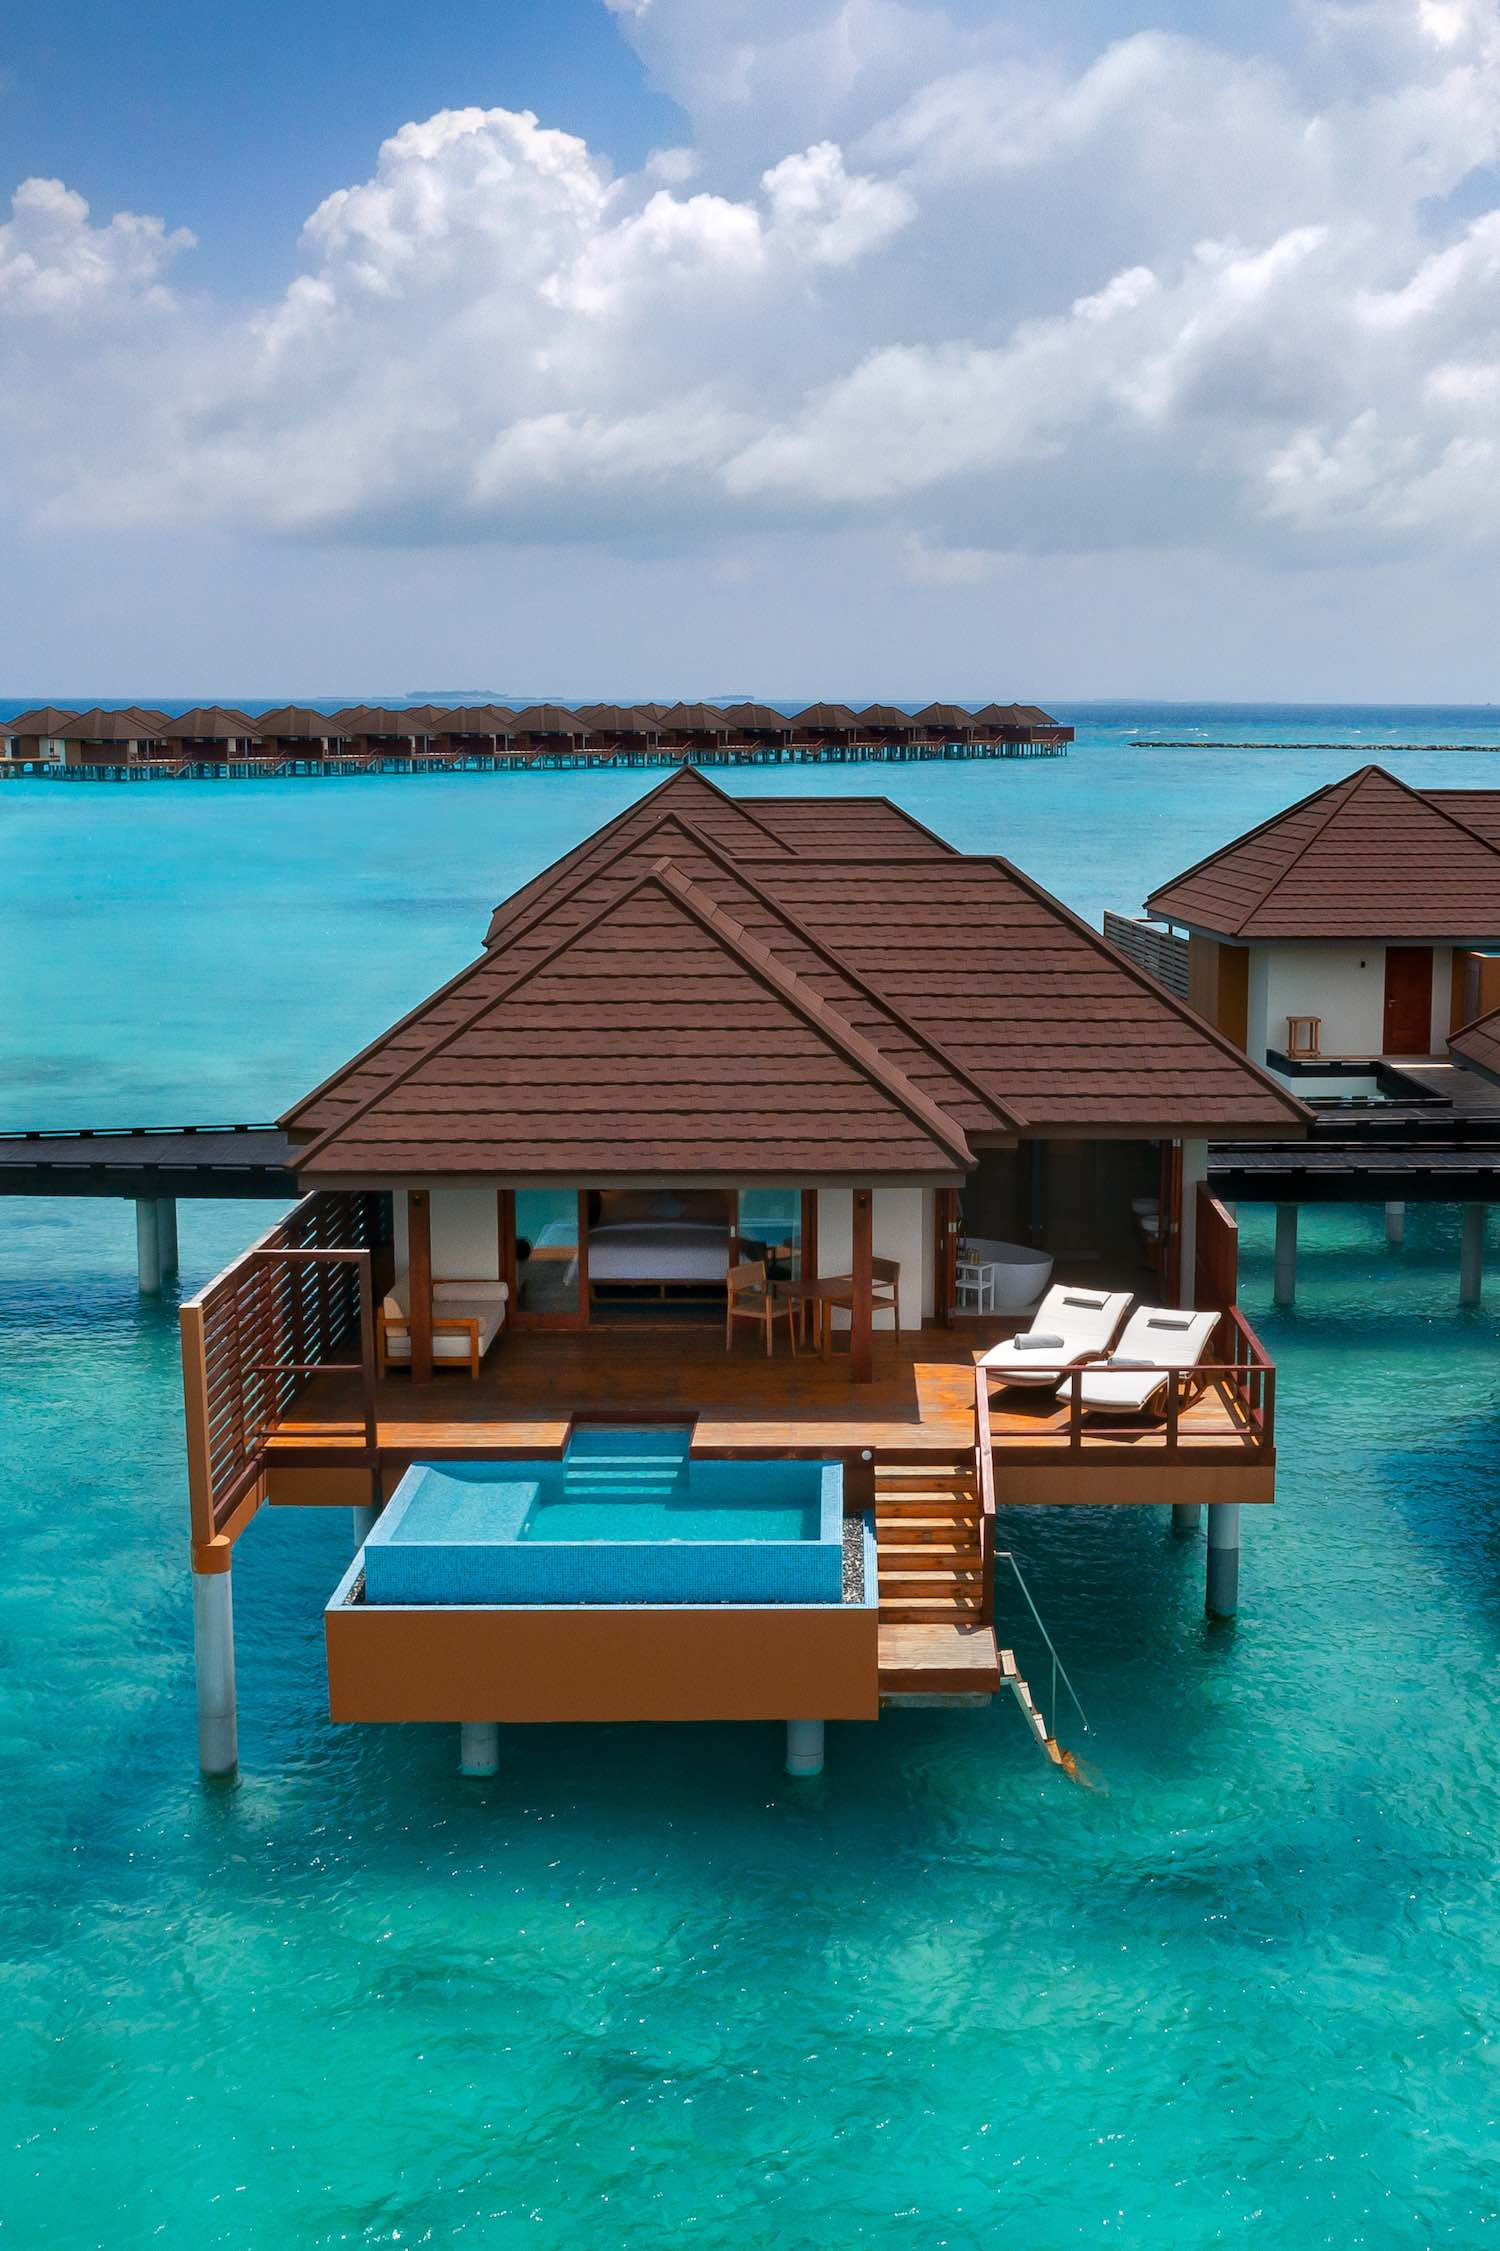 maldives-varu-by-atmosphere-water-villa-with-pool-villa-exterior-view-holiday-honeymoon-vacation-invite-to-paradise.jpg